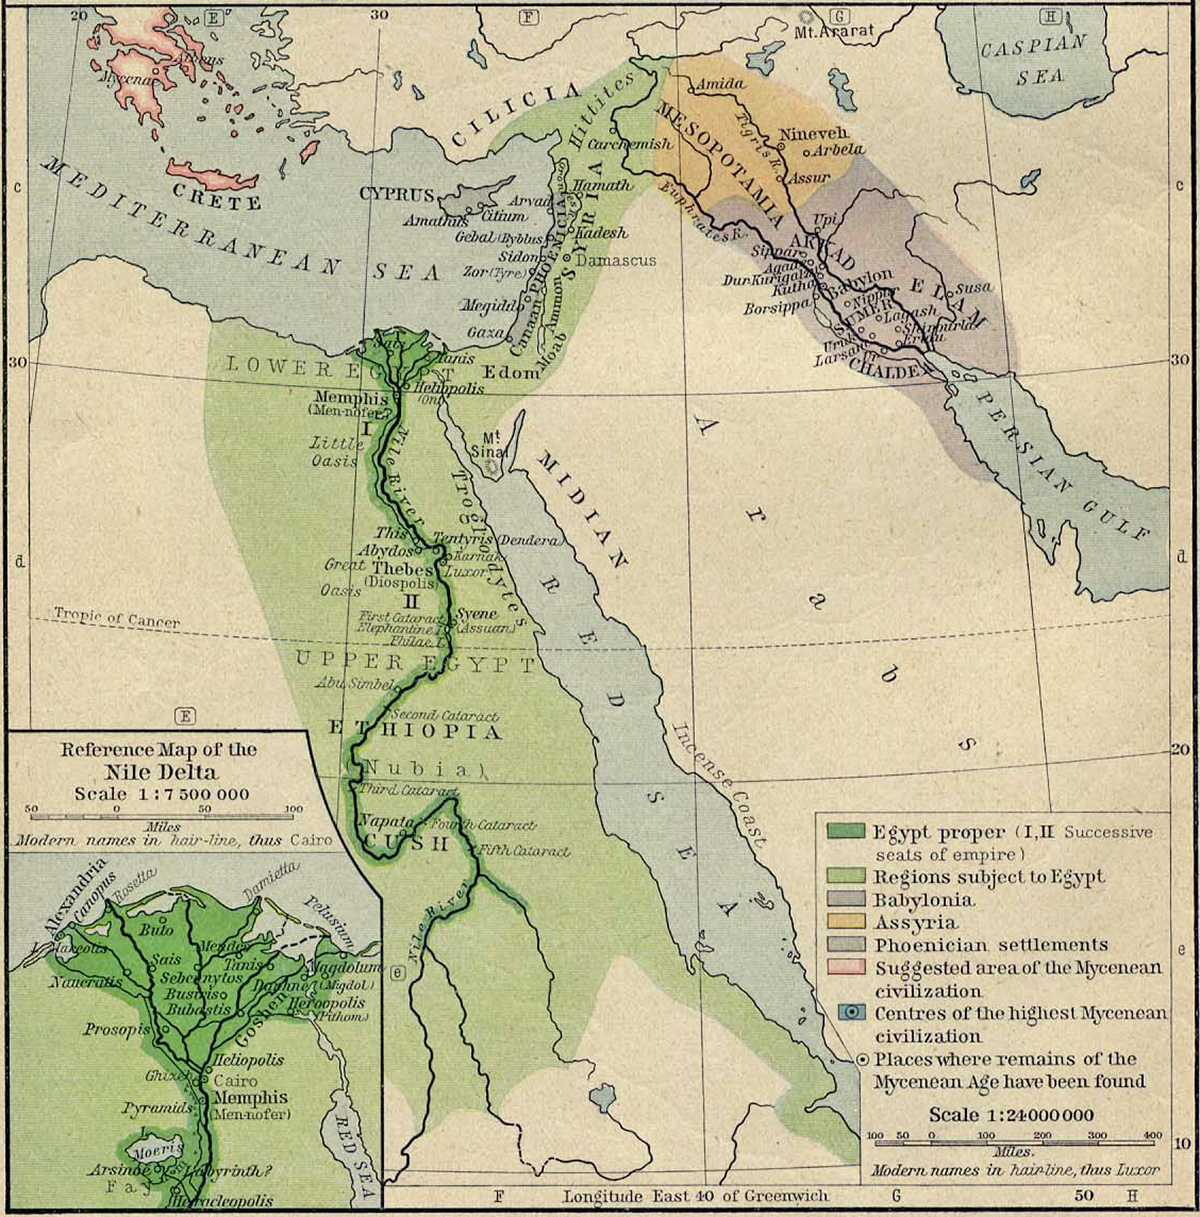 Map of Egypt, Syria, and Mesopotamia 1450 BC